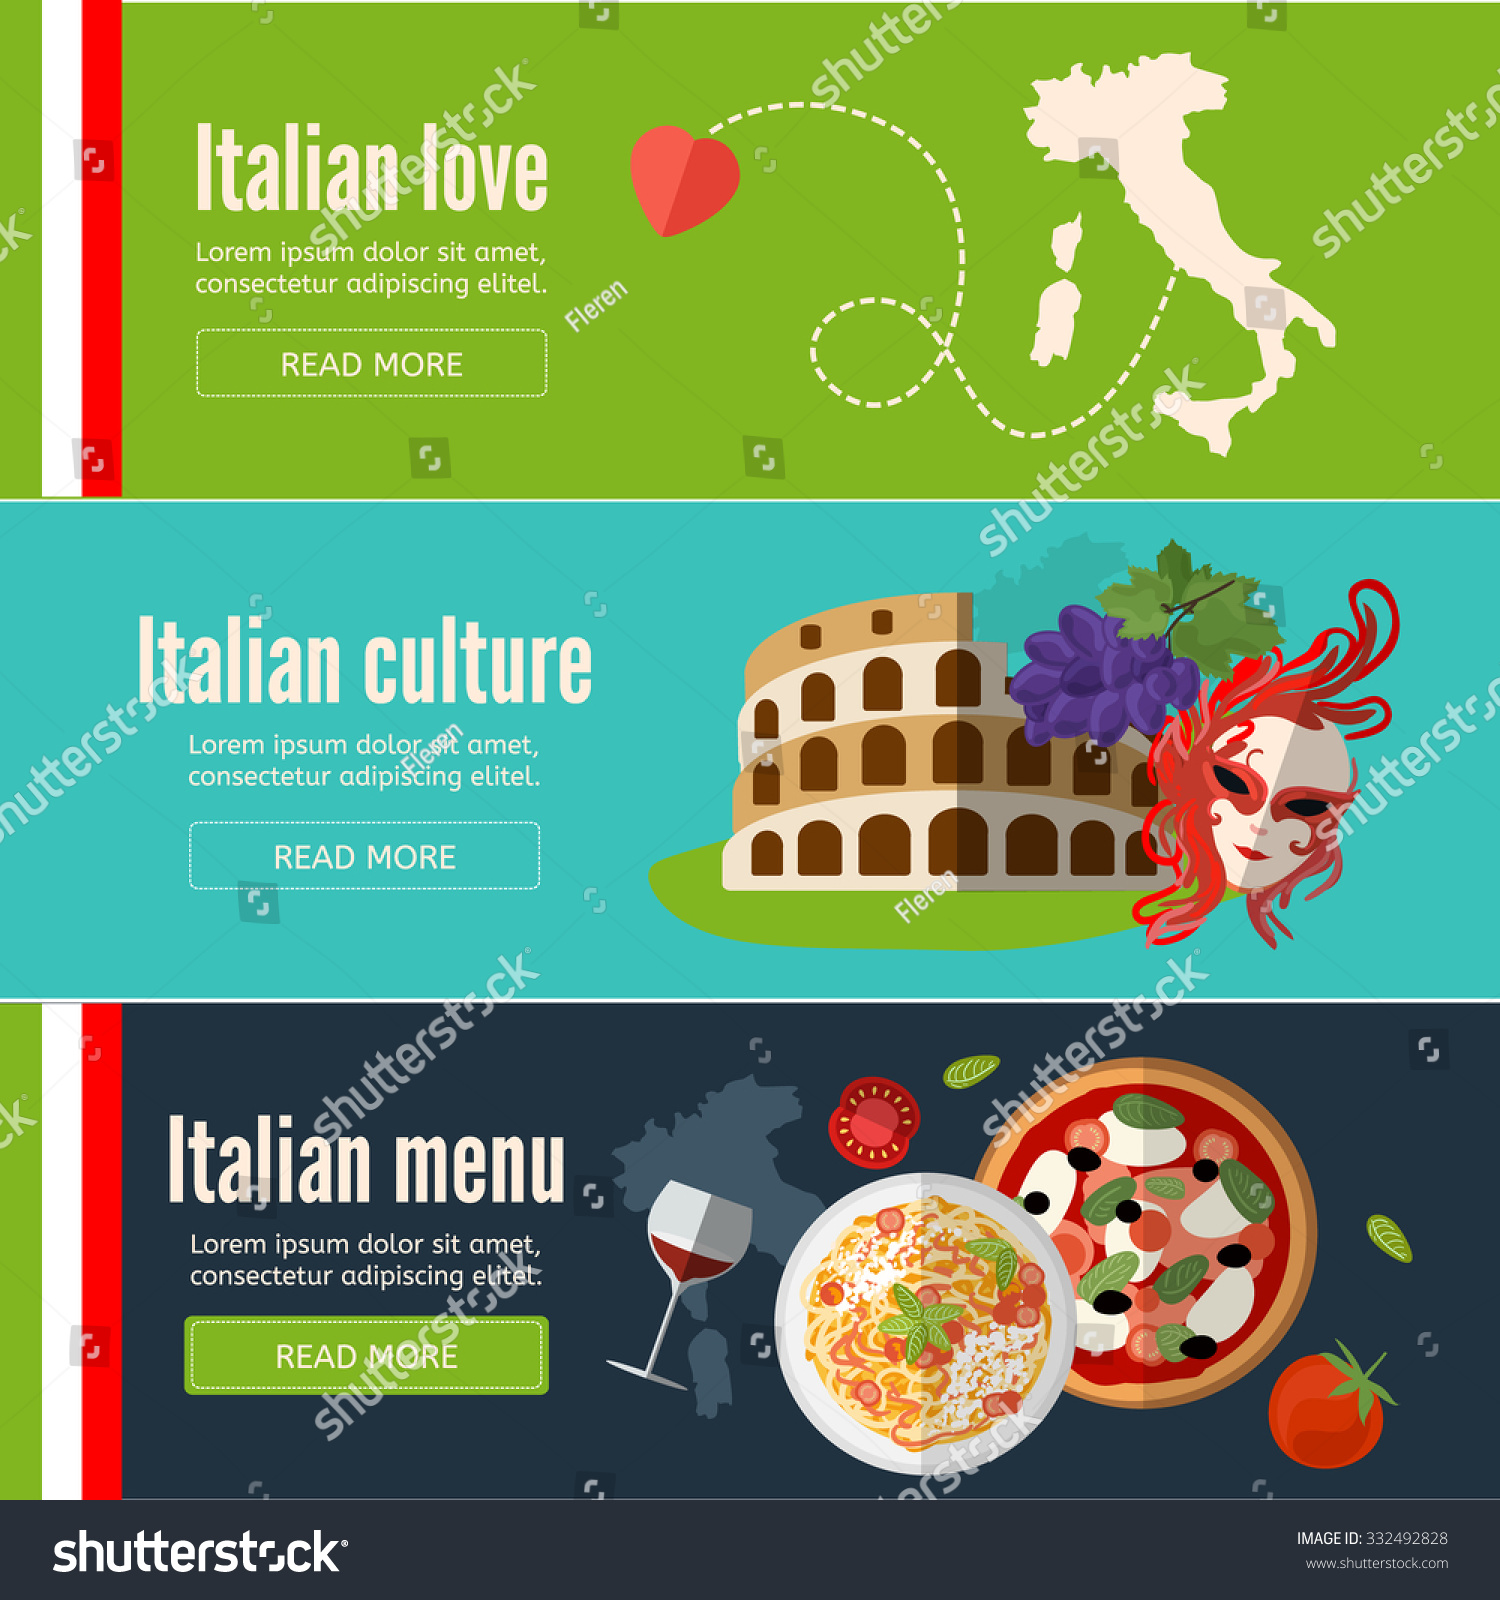 Italian Restaurant Near Me: Collection Of Web Banners With With Italian Food, Symbols